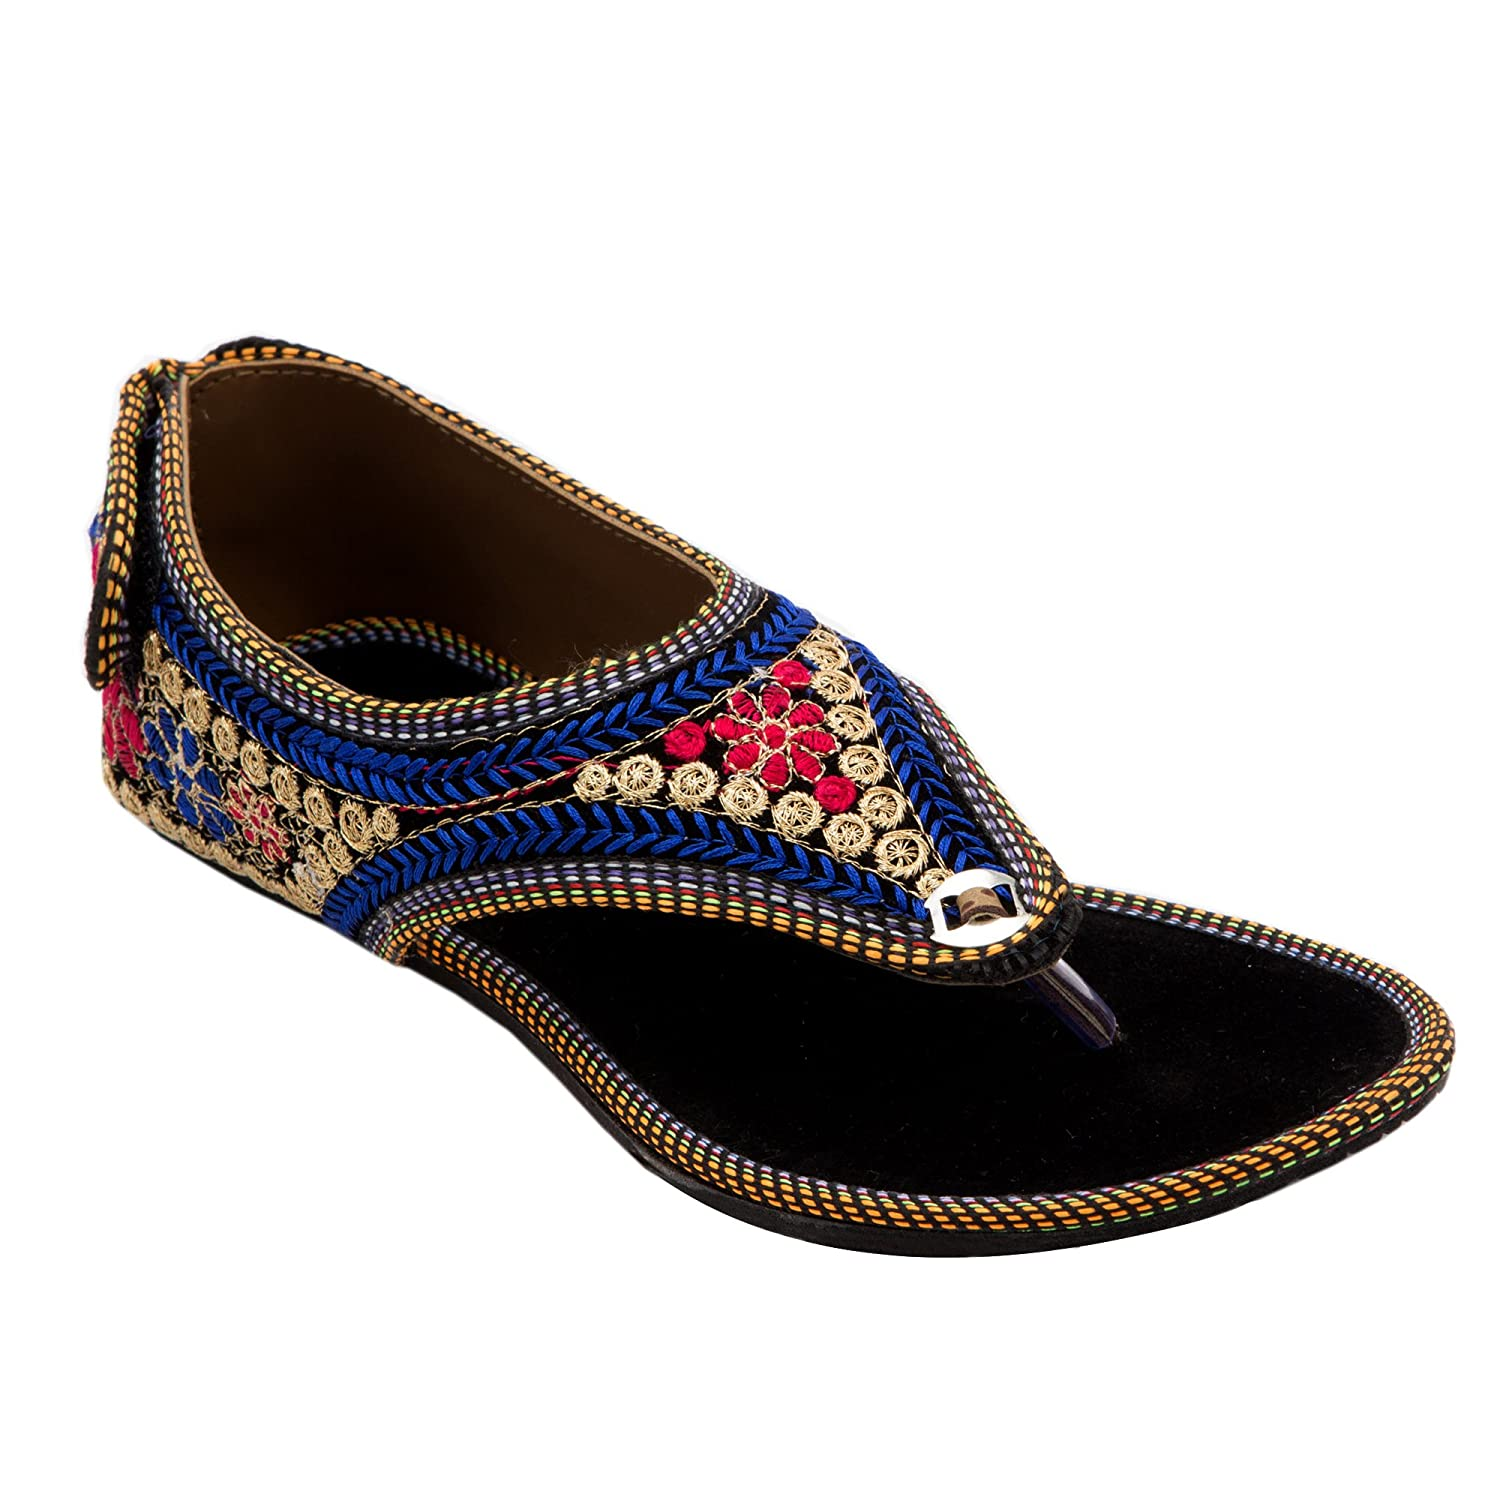 Ridhi Sidhi Women\'s Colorful Embroidered Flats: Buy Online at Low ...